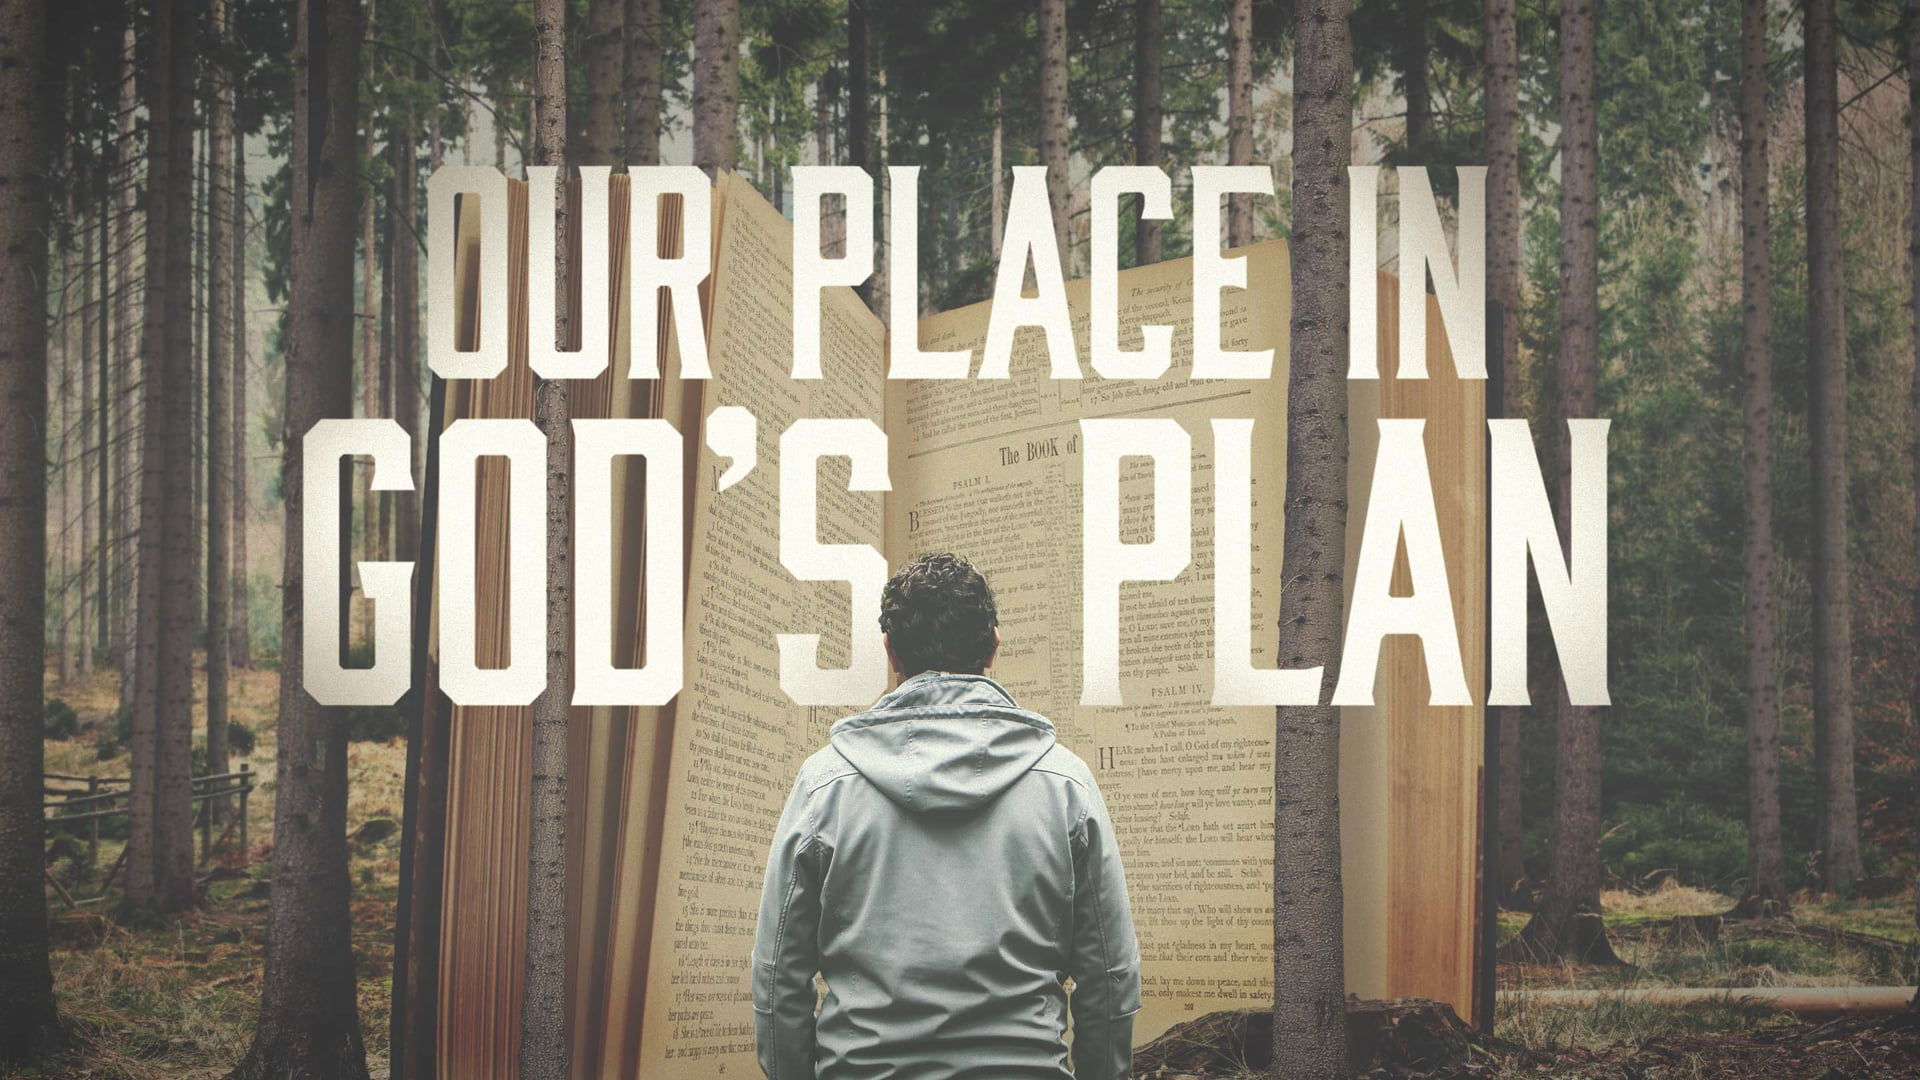 Our Place in God's Plan